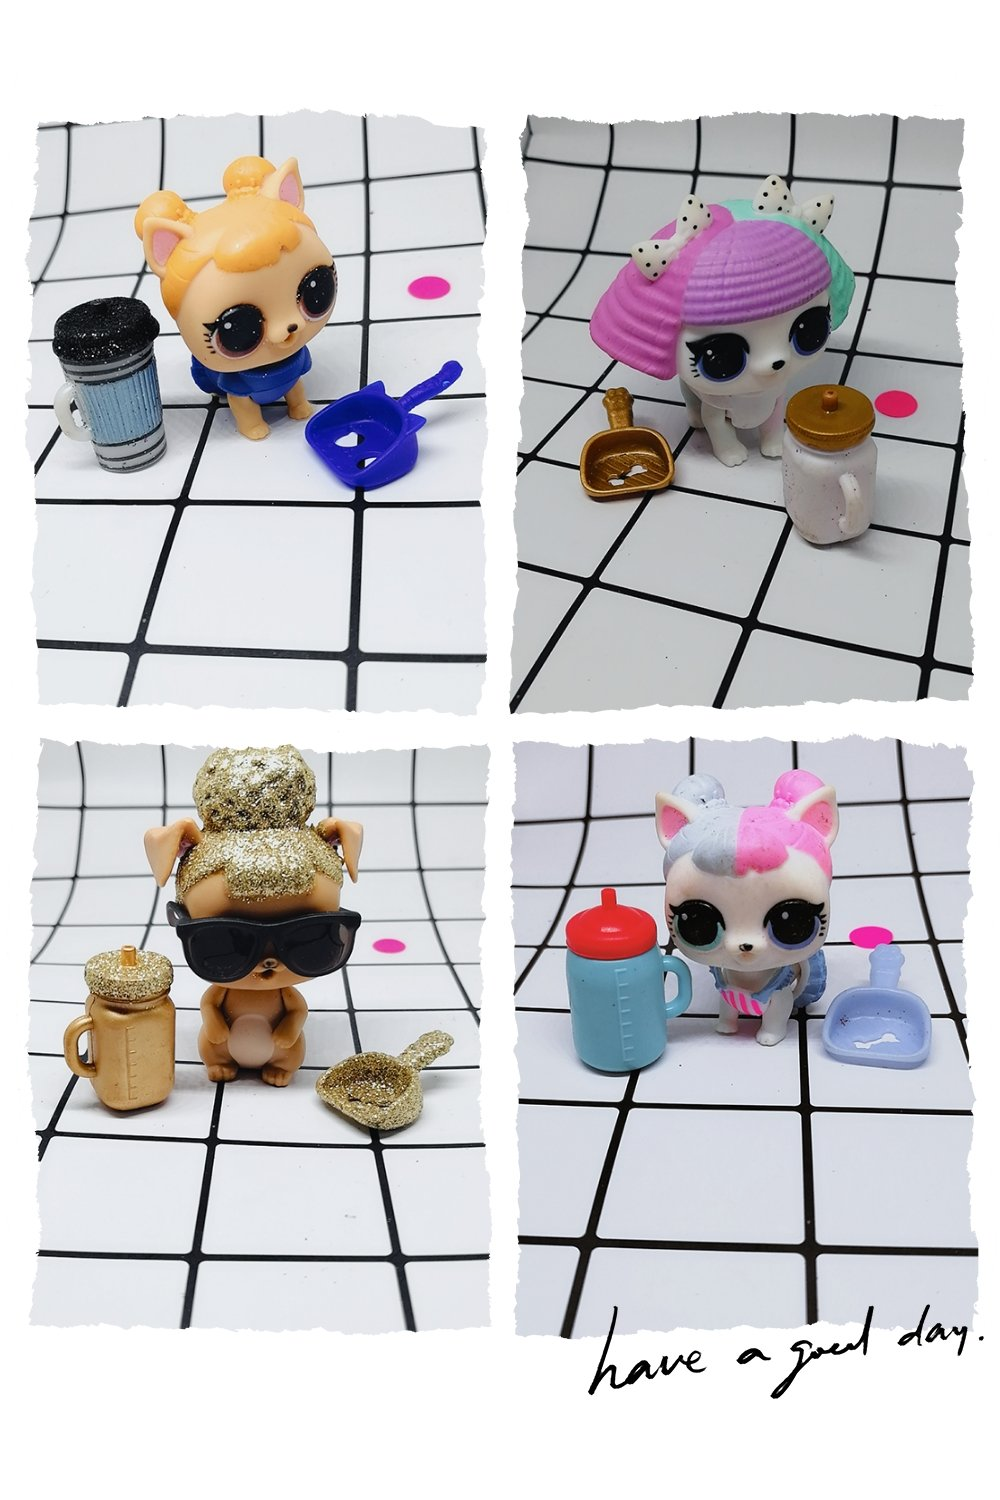 LOL Doll Surprise Original Pet Surprise Clothes Accessories Urination  Tears Bottle Shovel Clothes Toys For Children